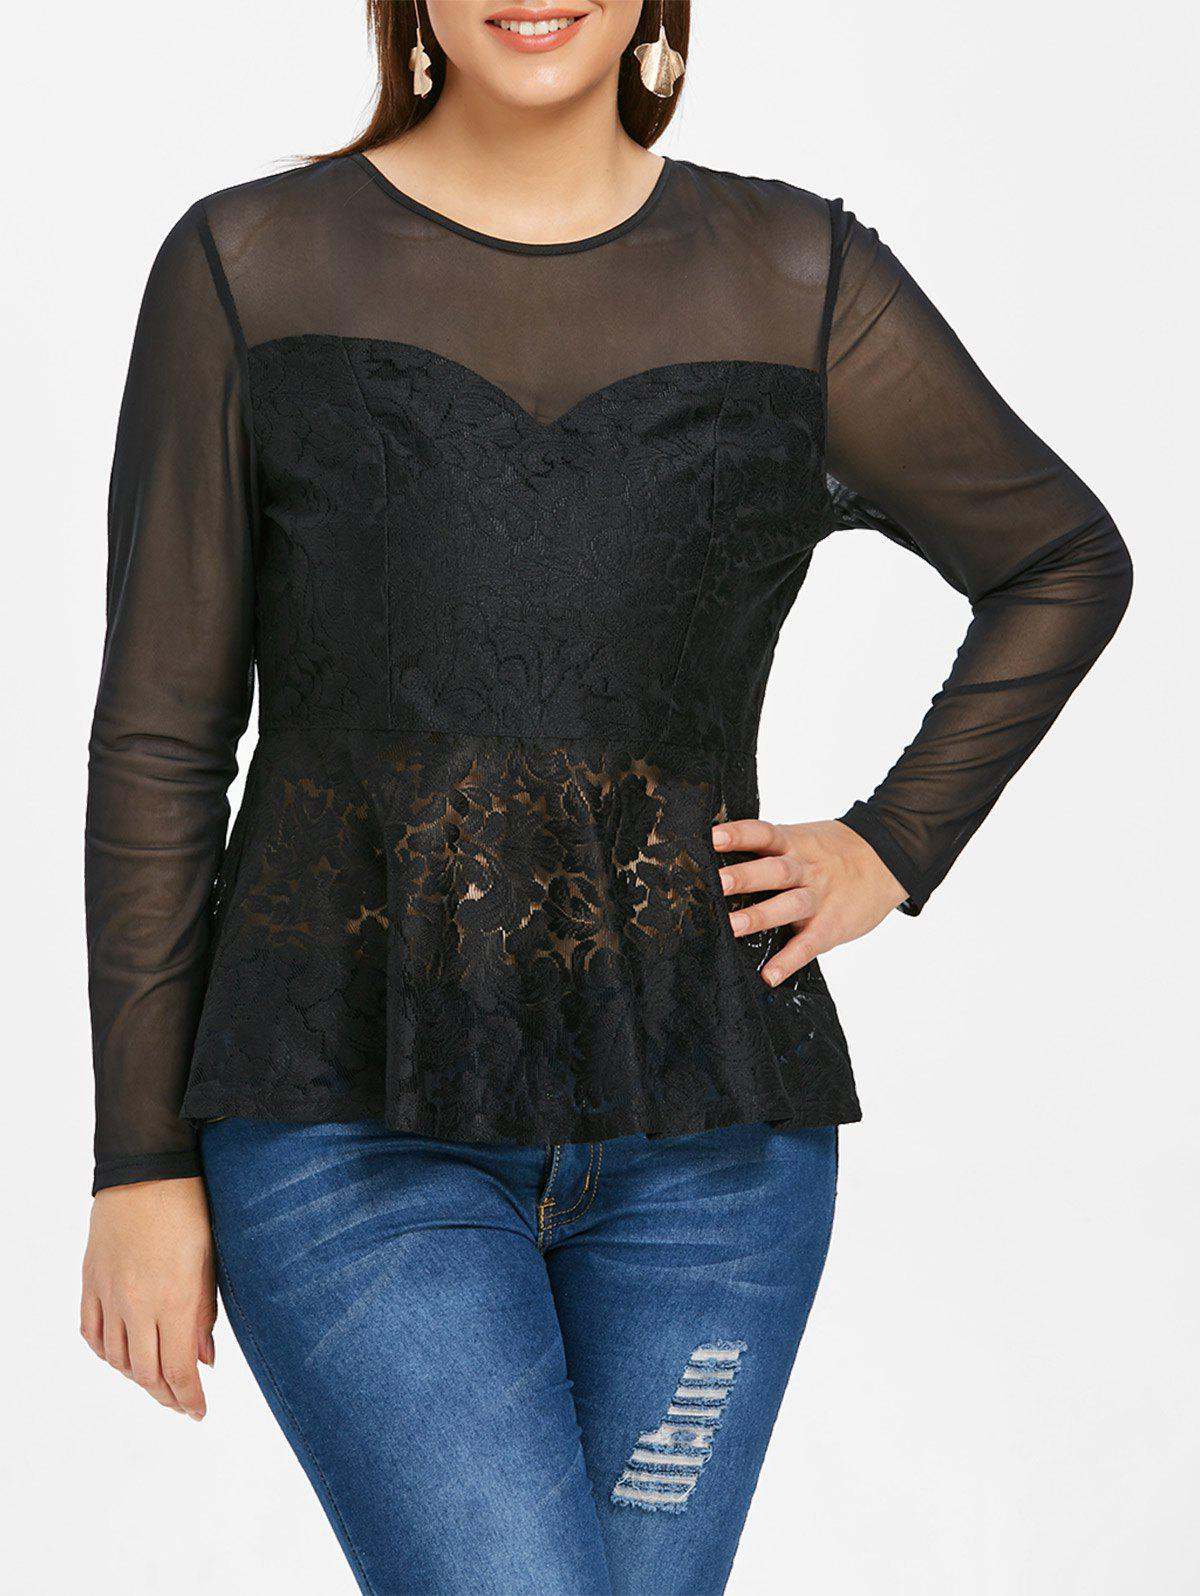 Hot Mesh and Lace Panel Plus Size T-shirt